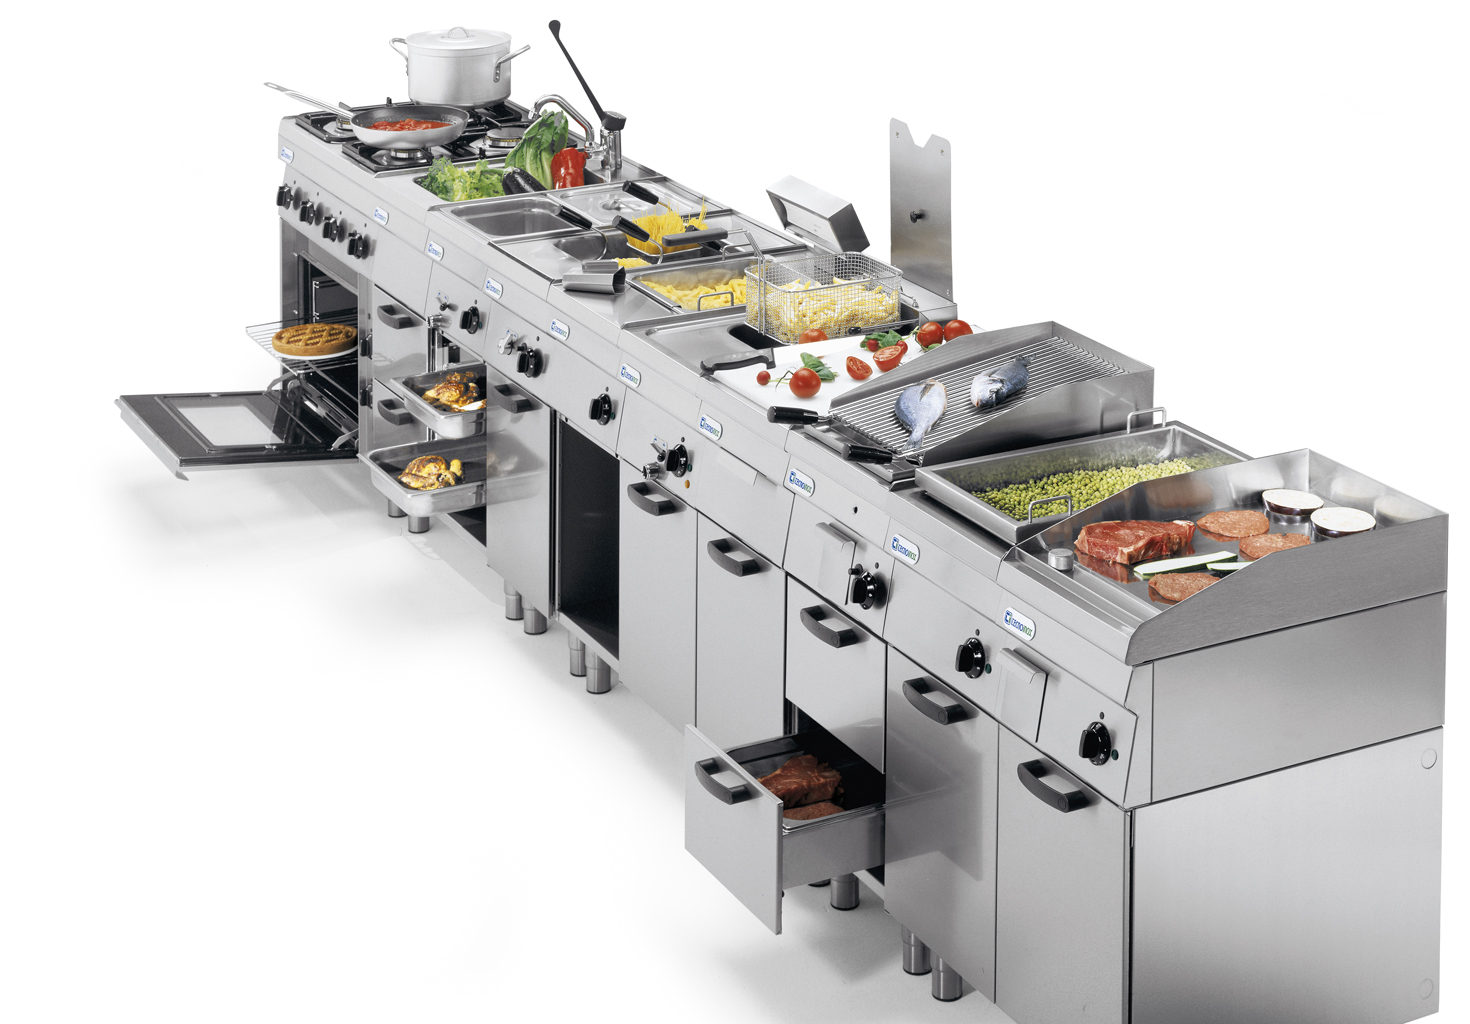 Restaurant Commercial Kitchen Equipment In Rochester NY - Restaurant equipment